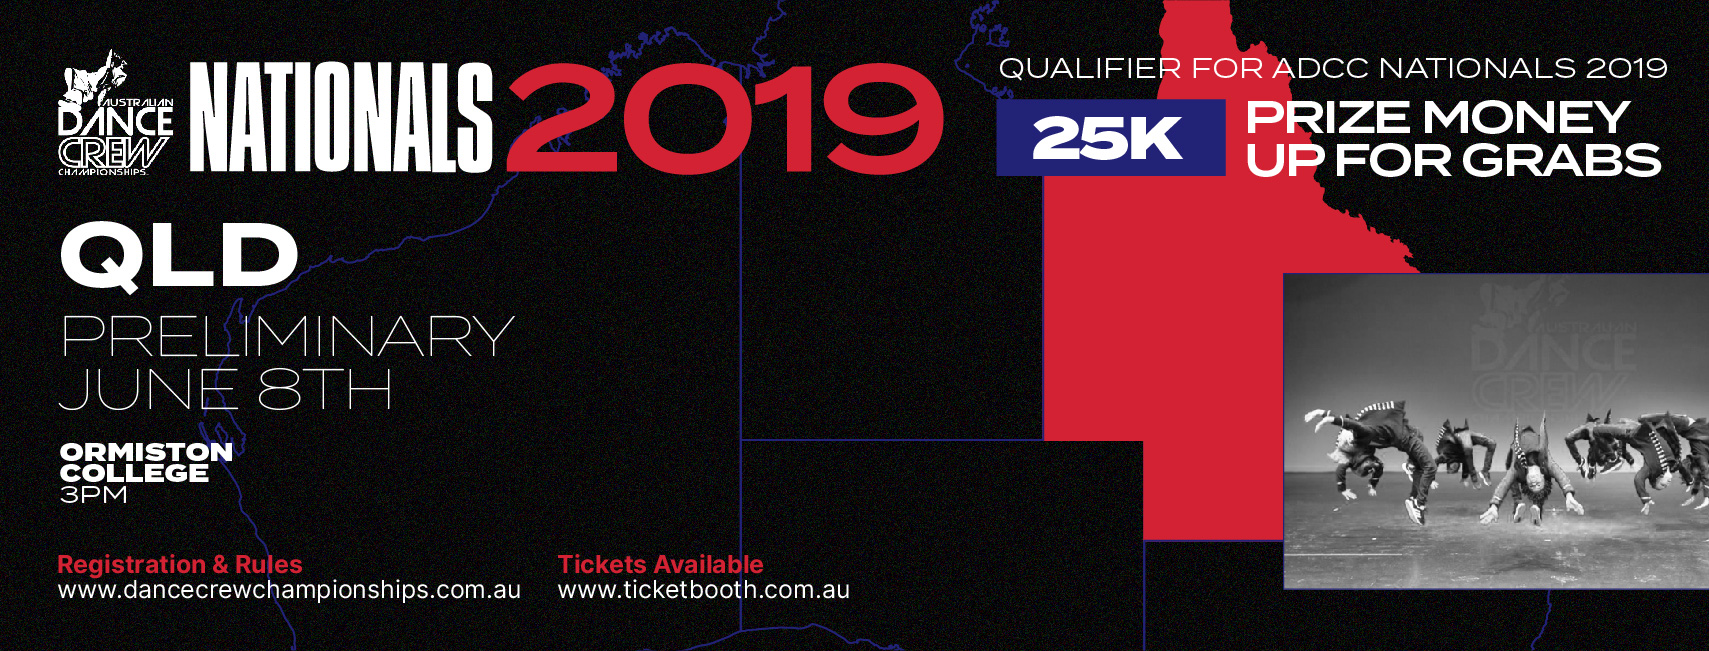 Tickets for Australian Dance Crew Championships – QLD Preliminary 2019 in Ormiston from Ticketbooth